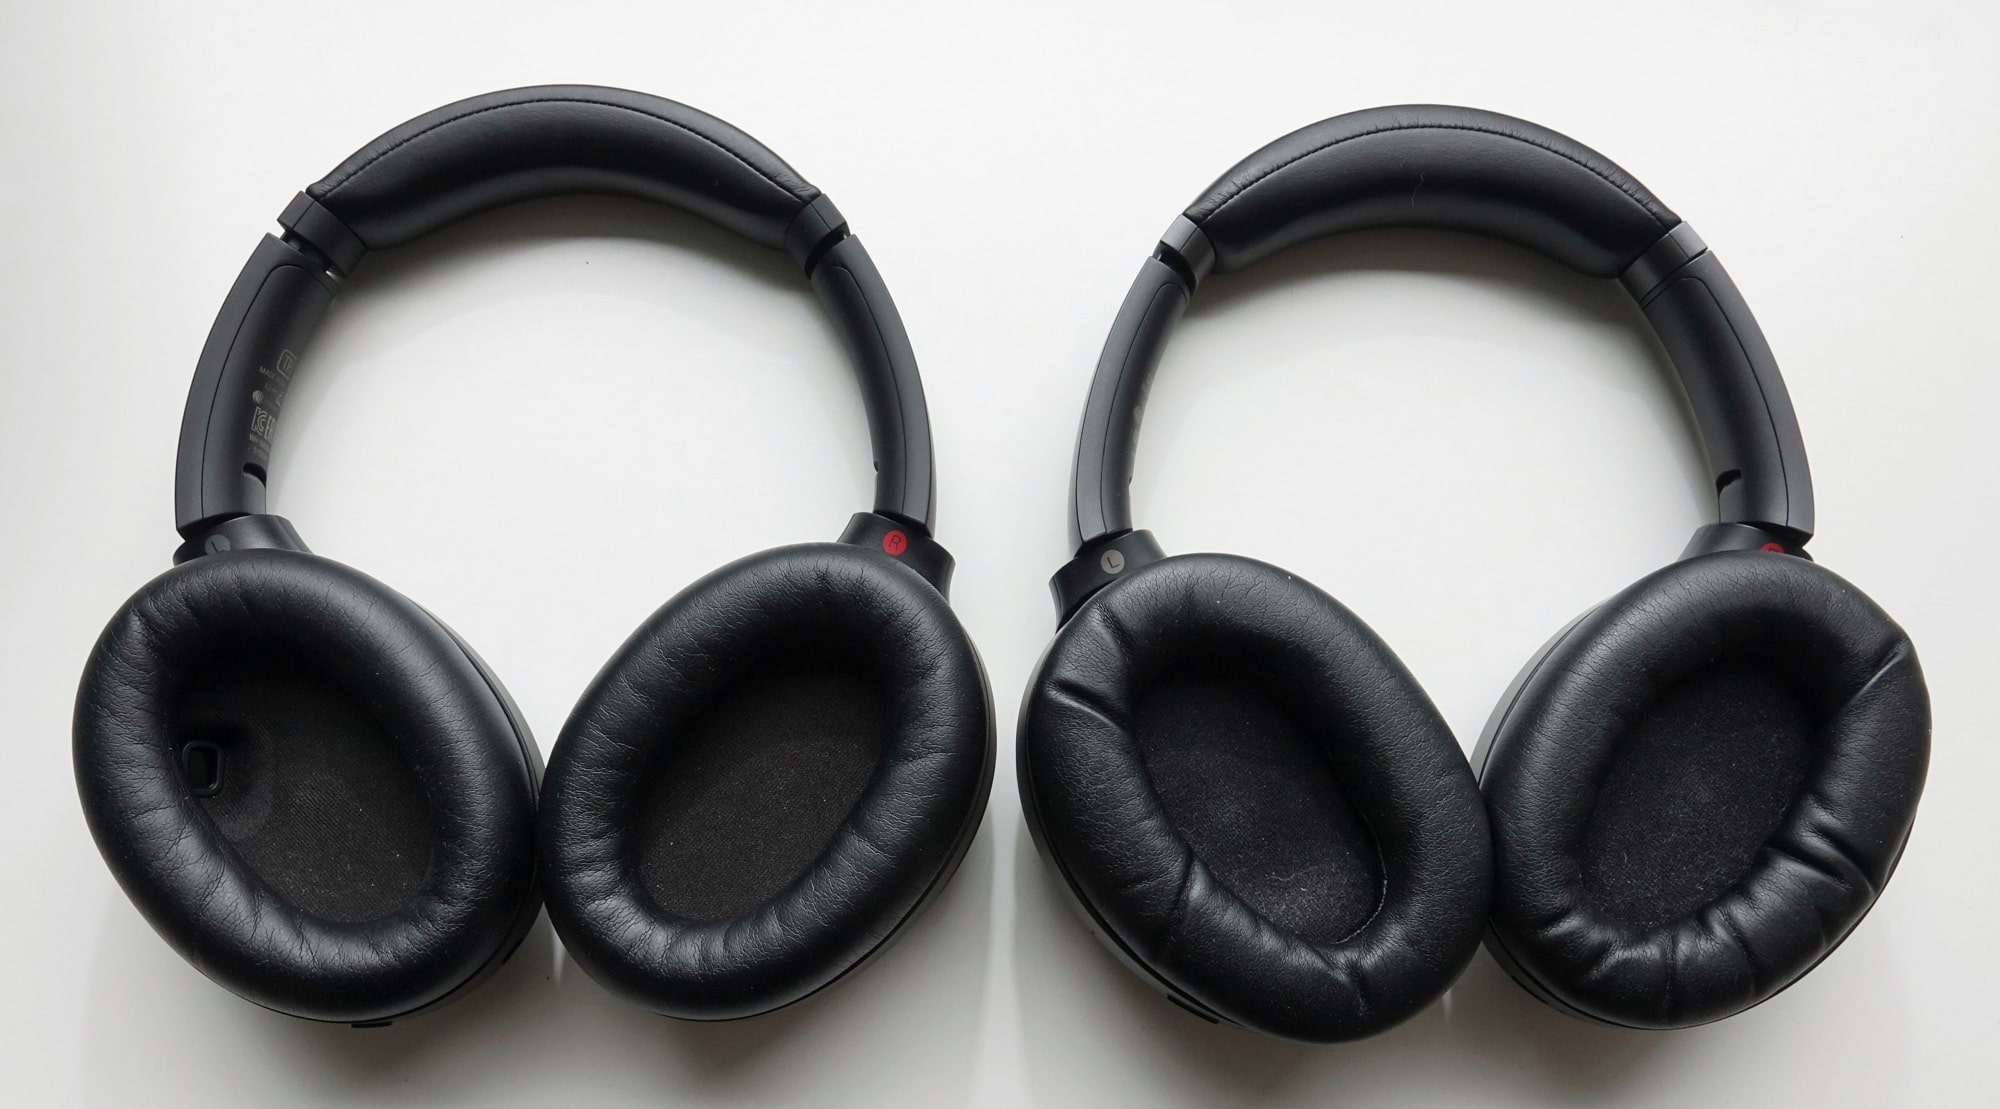 Headphones compared: the Sony WH-1000XM4 (left) vs the Sony WH-1000XM3 (right)